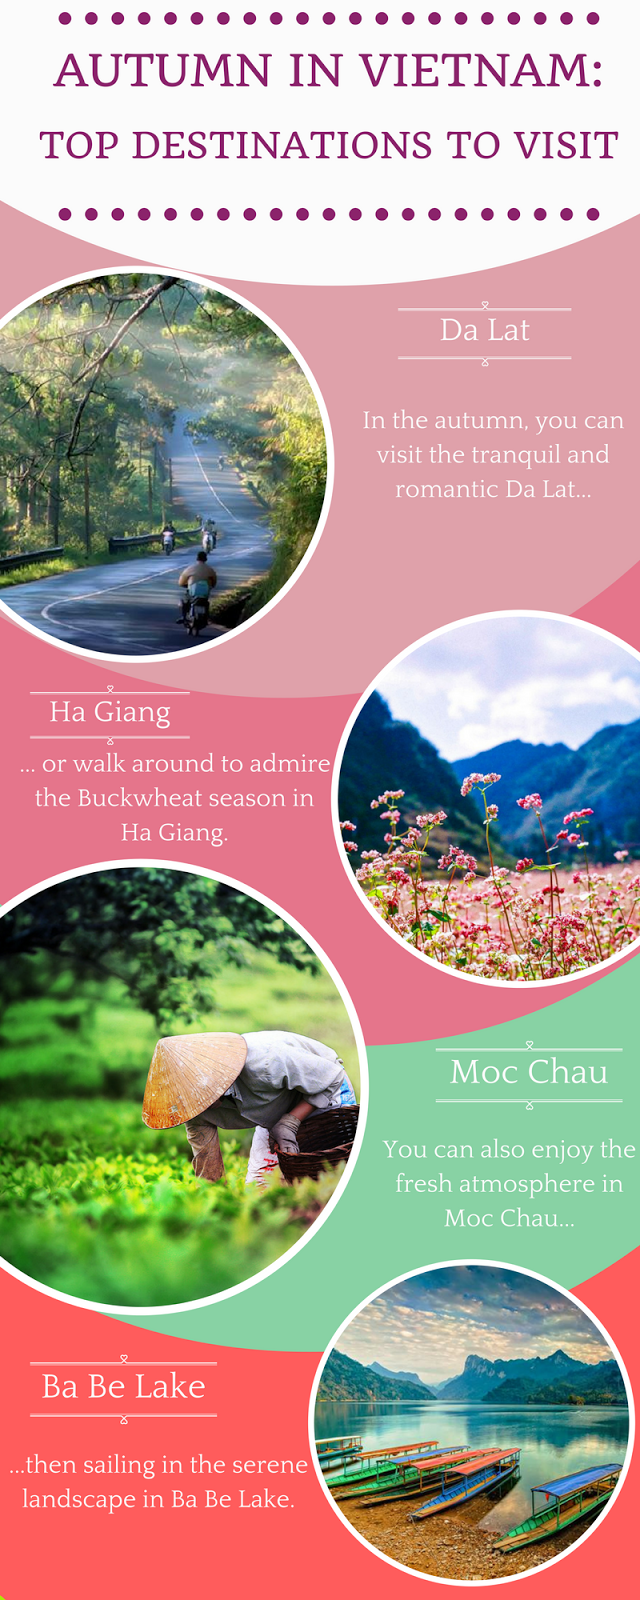 Guide to visit Vietnam in Autumn